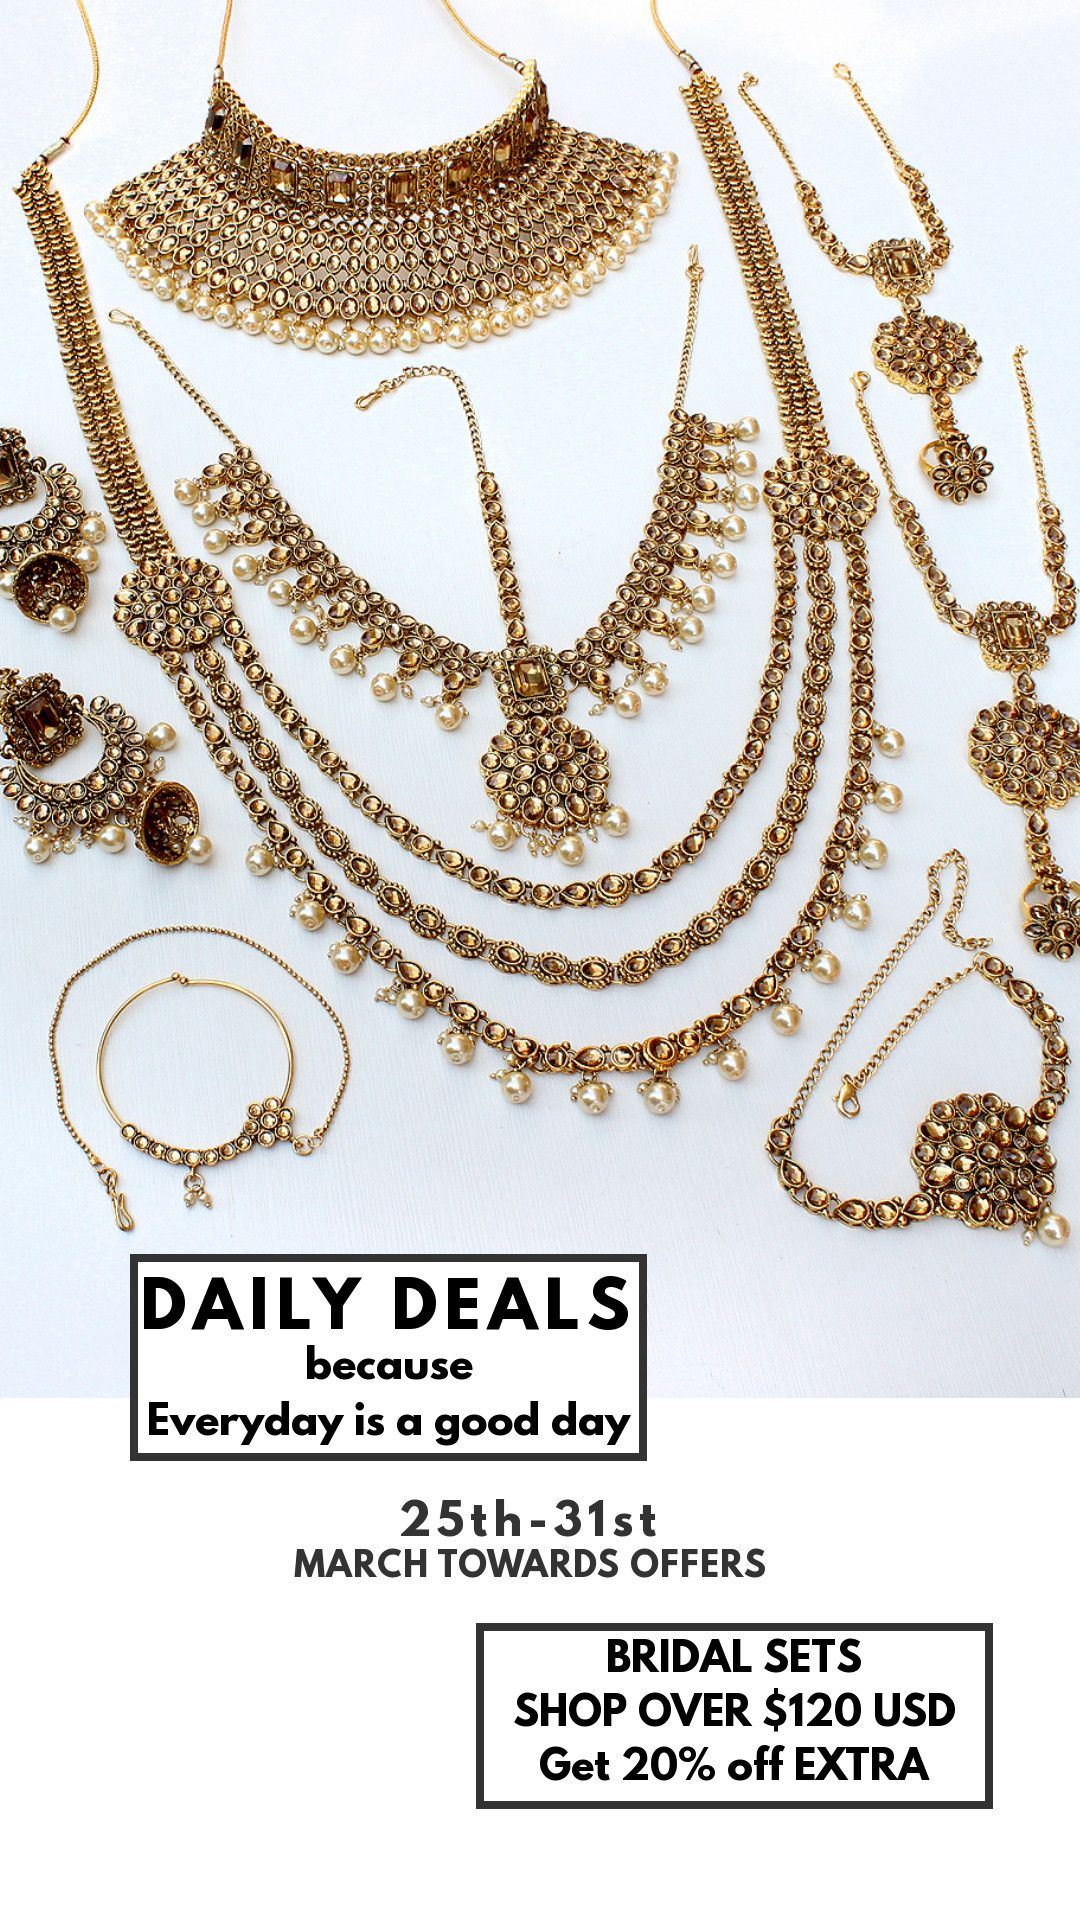 biggest sale on earring, hair accessories, necklaces